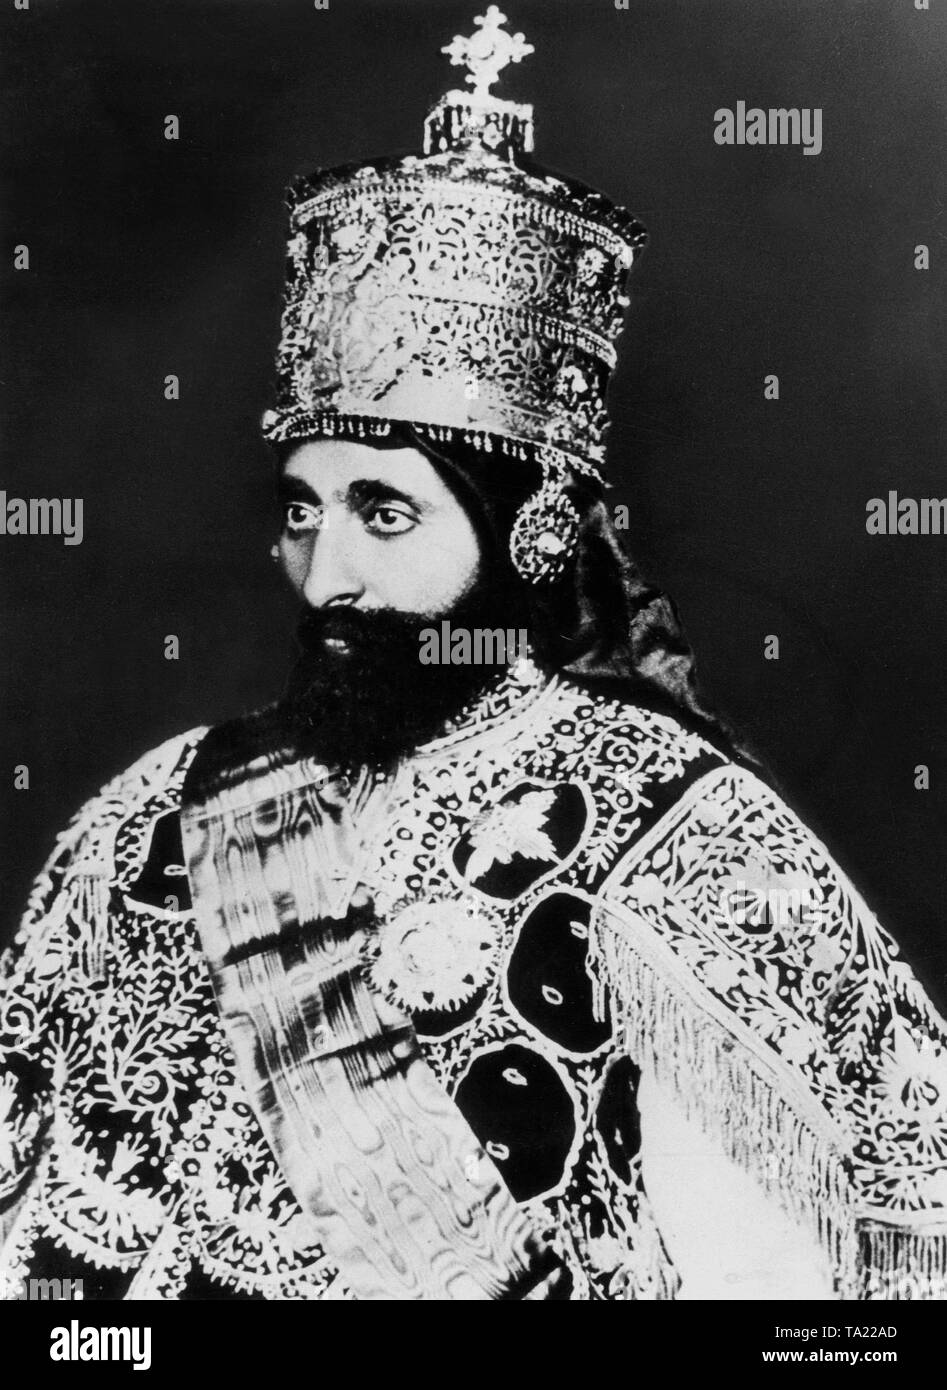 Emperor Haile Selassie Portrait High Resolution Stock Photography And Images Alamy